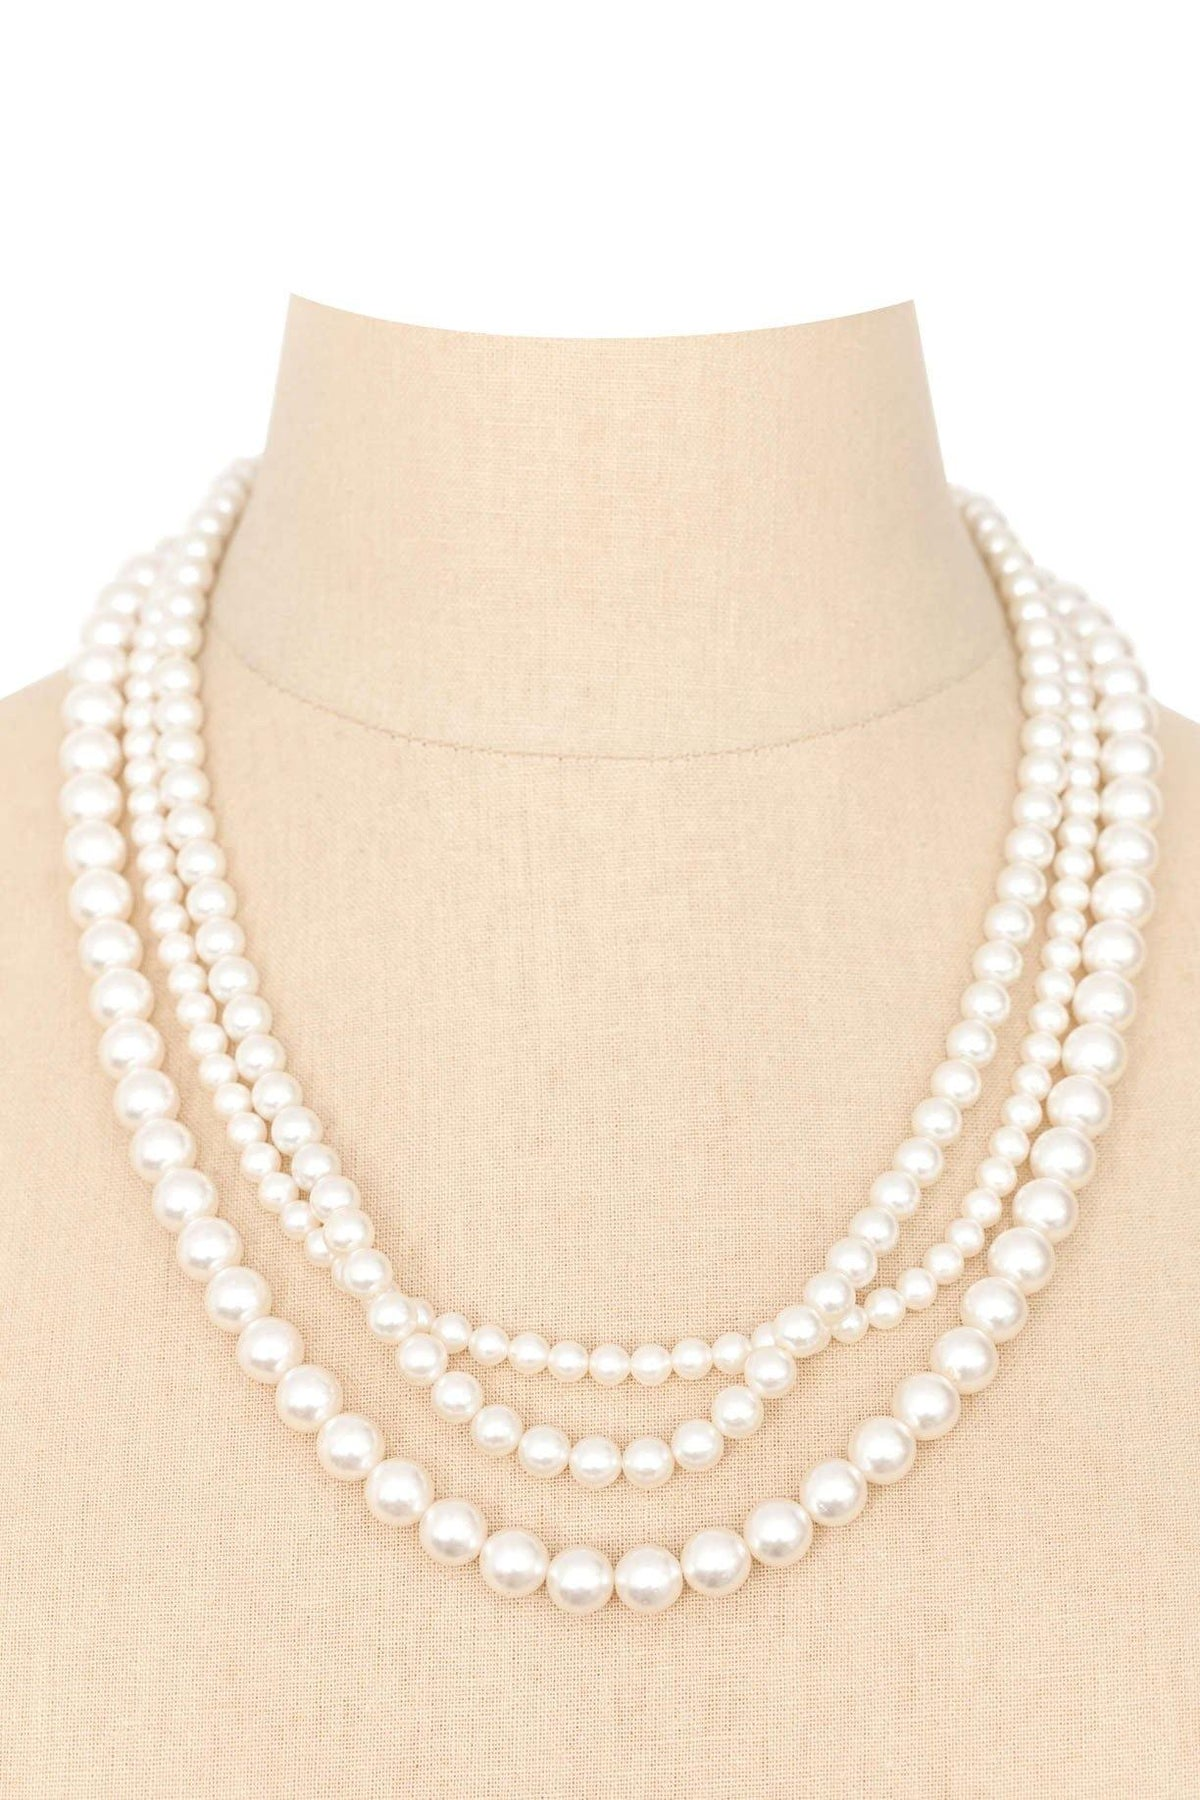 50's Vintage Multichain Pearl Necklace